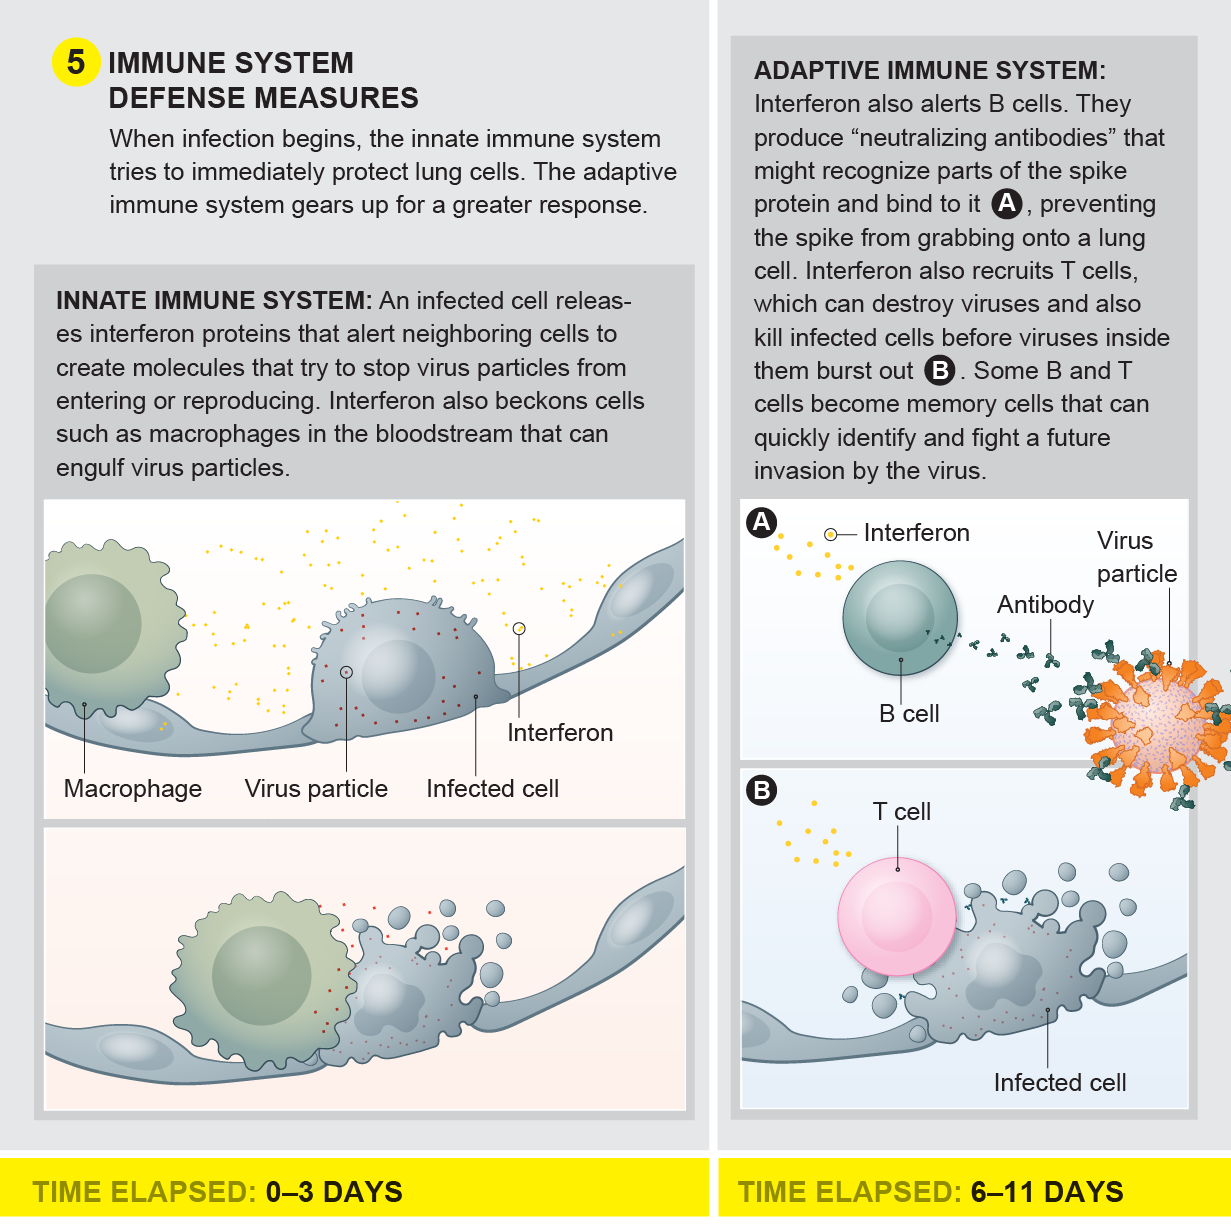 The immune system defense measures